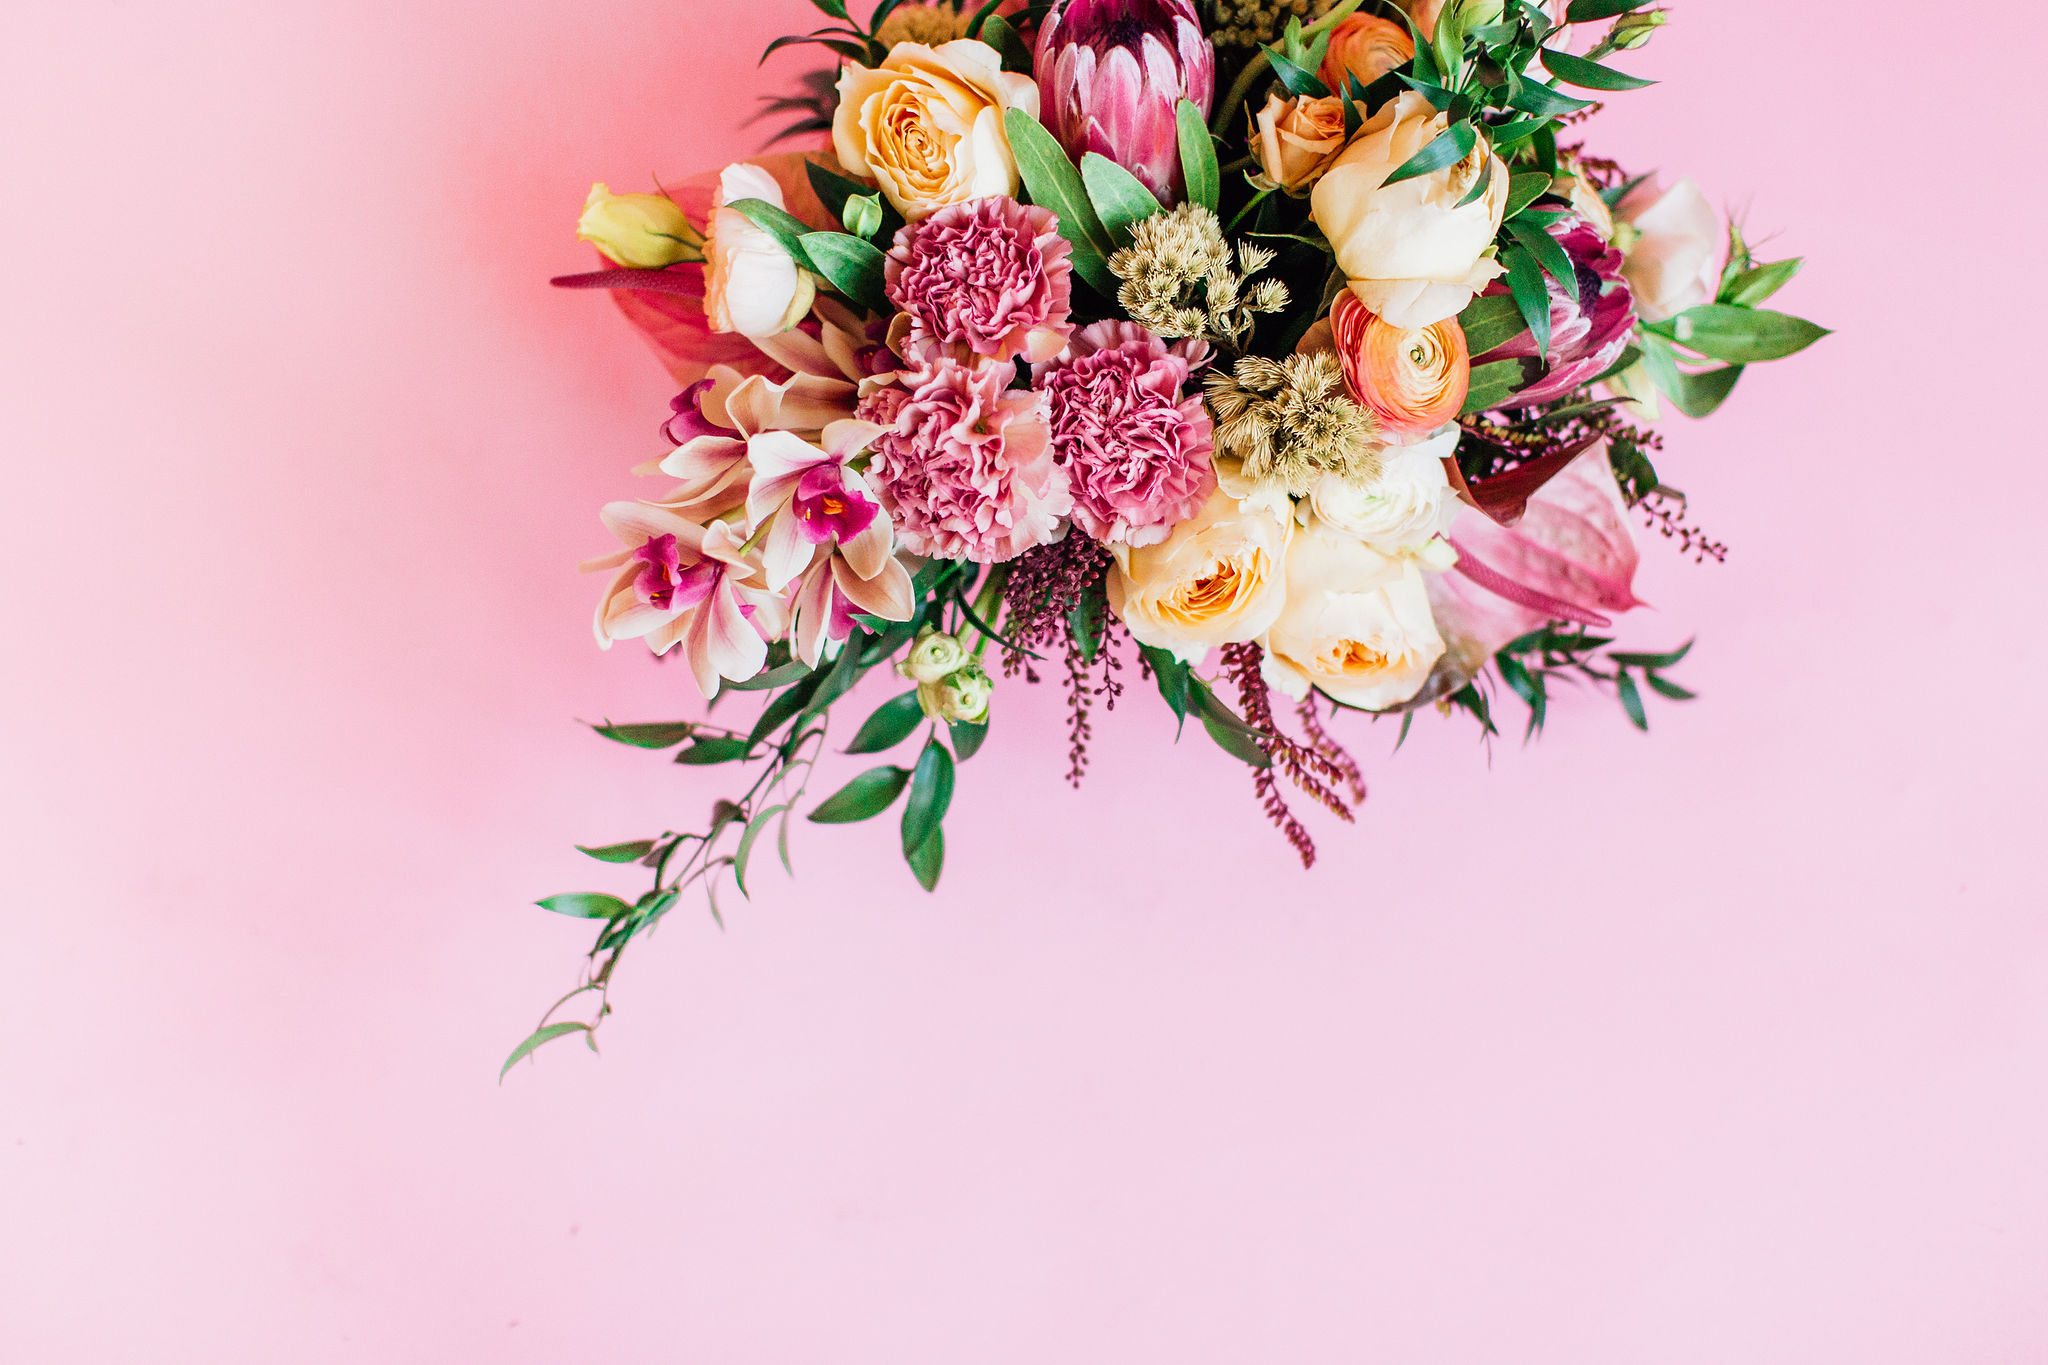 Let There Be Florals! - May is a month where mother nature likes to strut her stuff and we are here for it! To honor all of the blossoming beauty going on outside, we wanted to direct your attention to some of our fabulous floral party decor available to shop at Confetë.